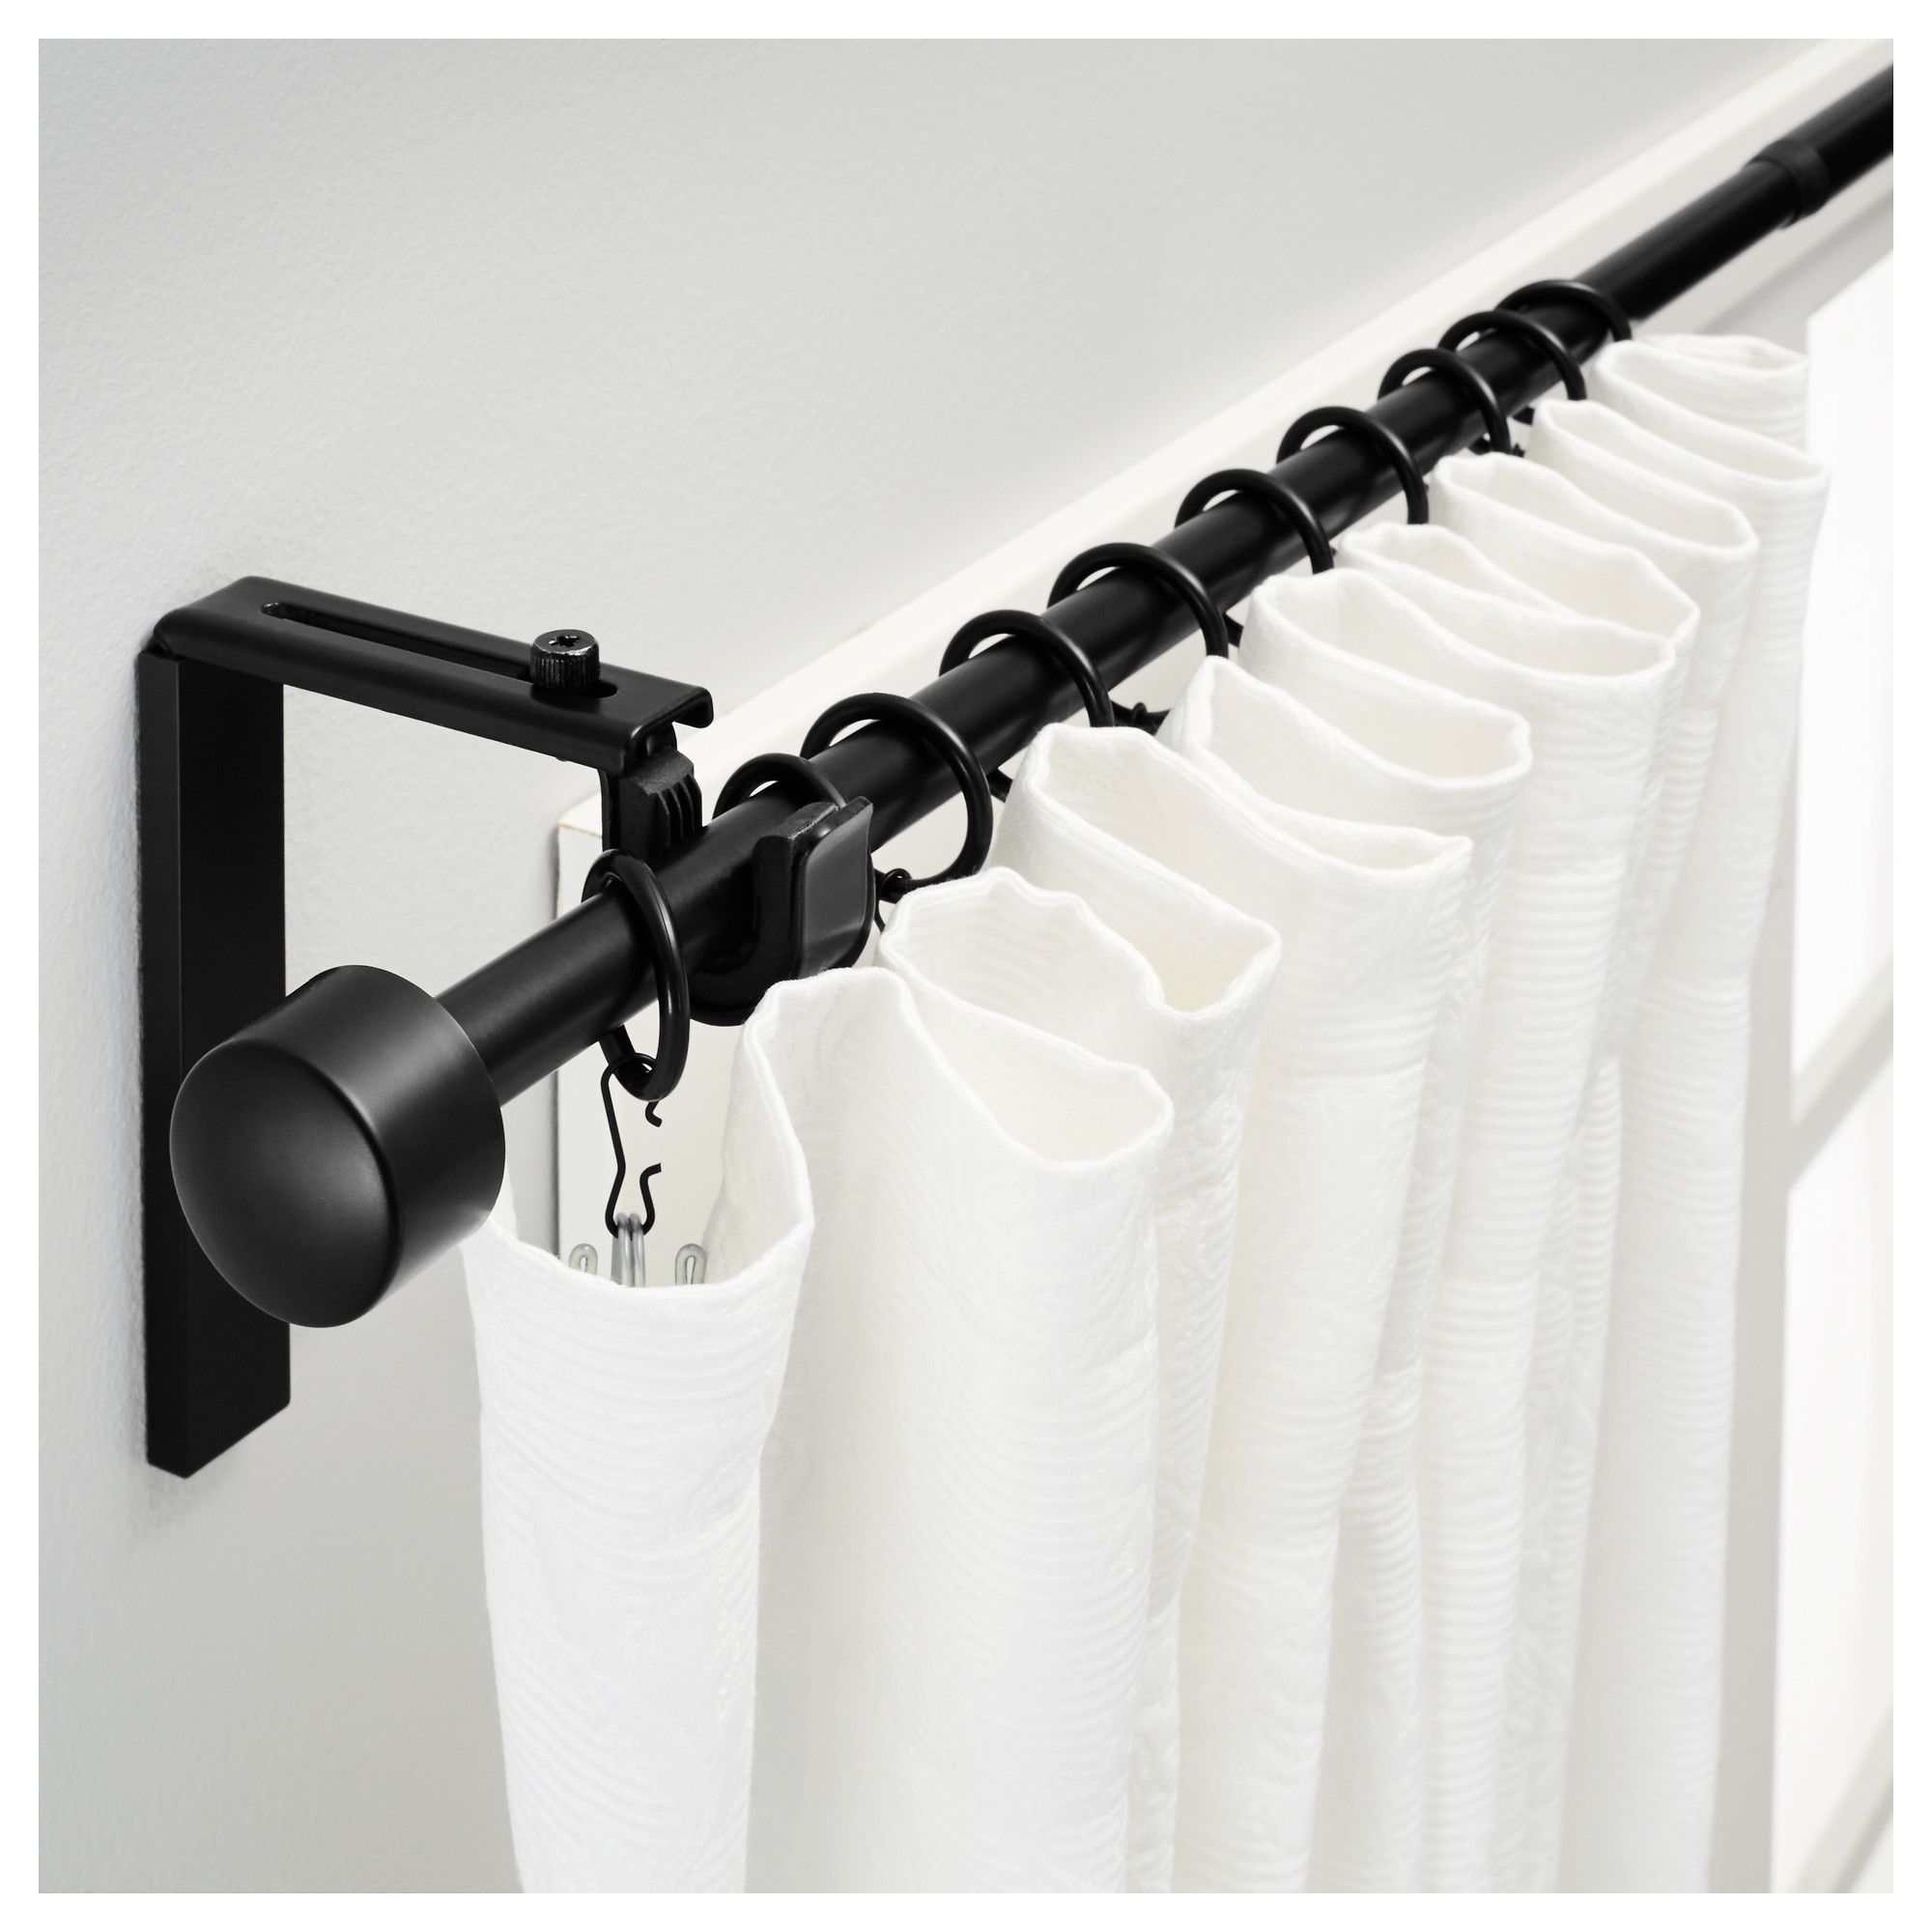 Racka Curtain Rod Combination Black Ikea Black Curtain Rods